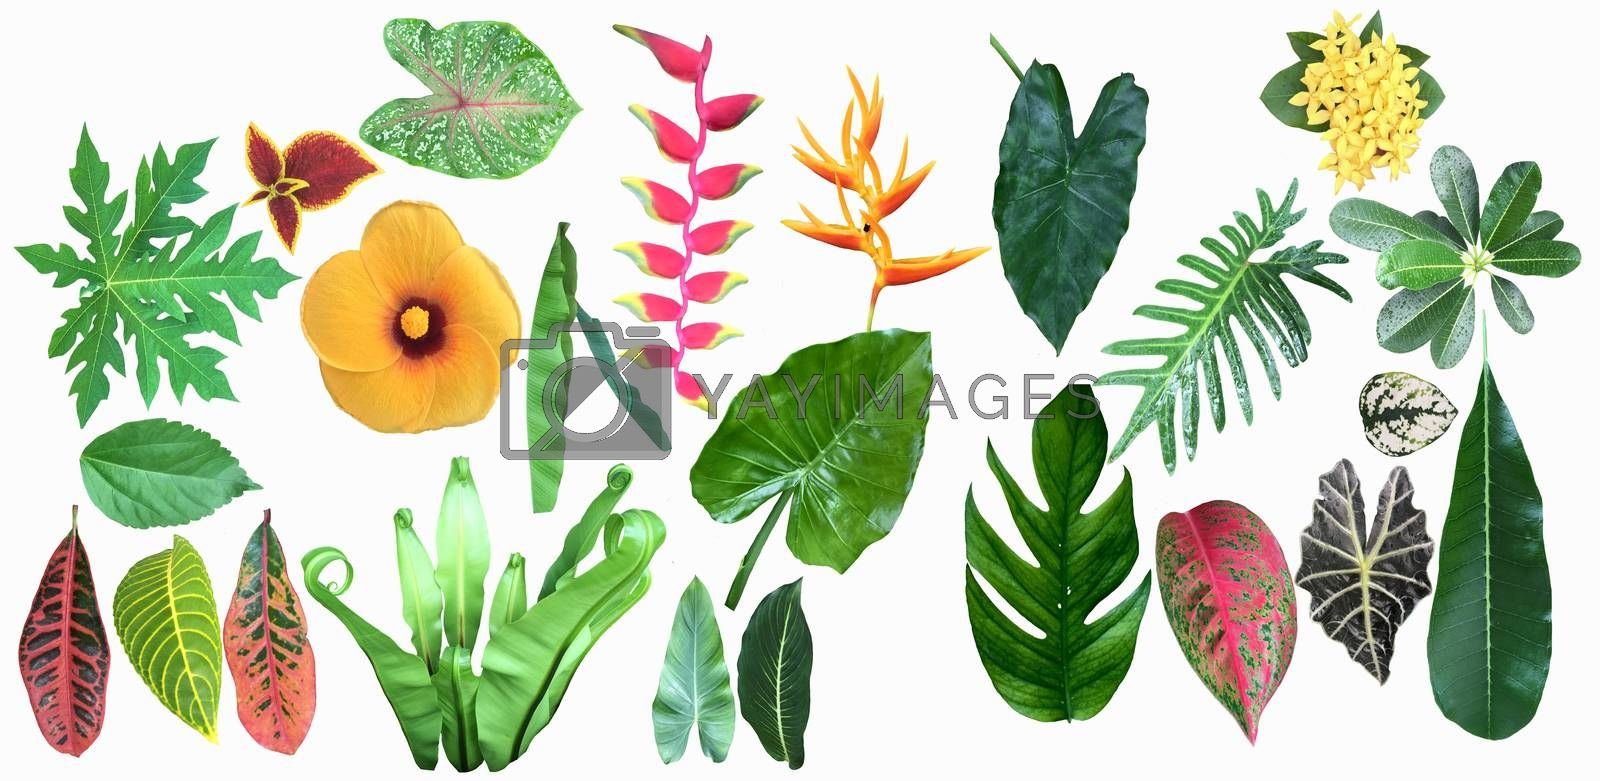 Tropical jungle leaves and flowers collection on white background.